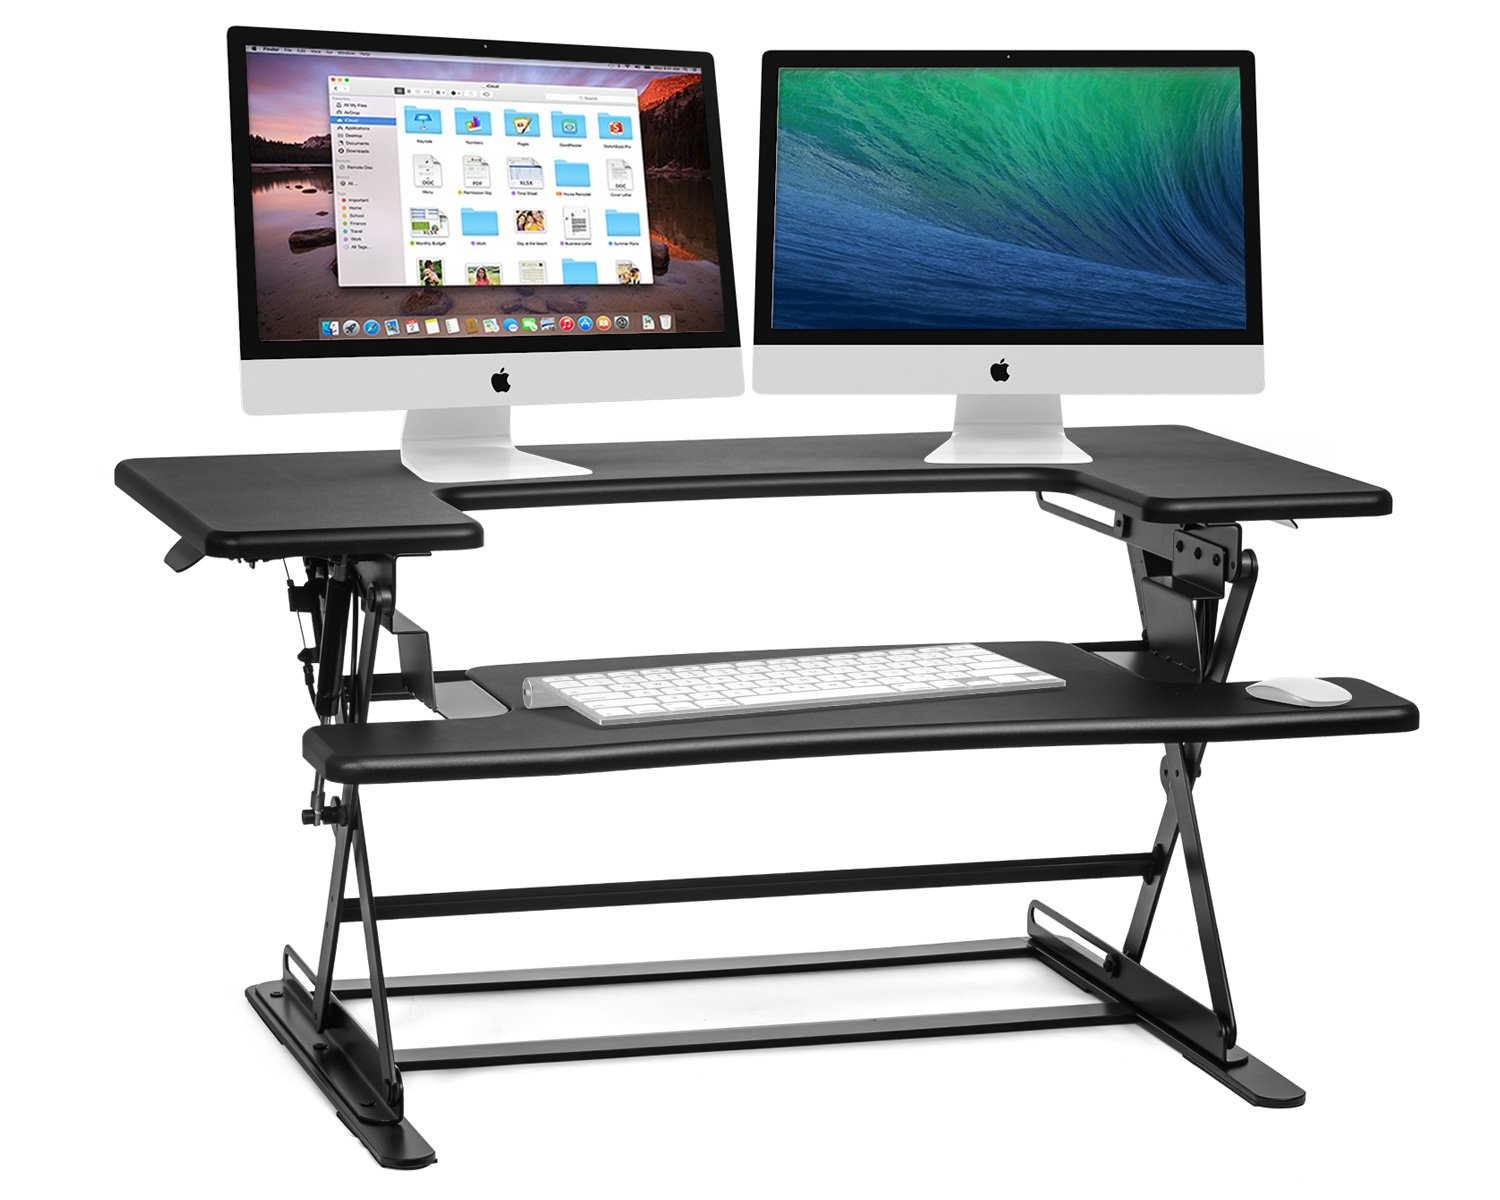 Halter ED-600 Preassembled Height Adjustable Desk Sit to Stand Elevating Desktop - Gas Spring Riser Workstation - Black